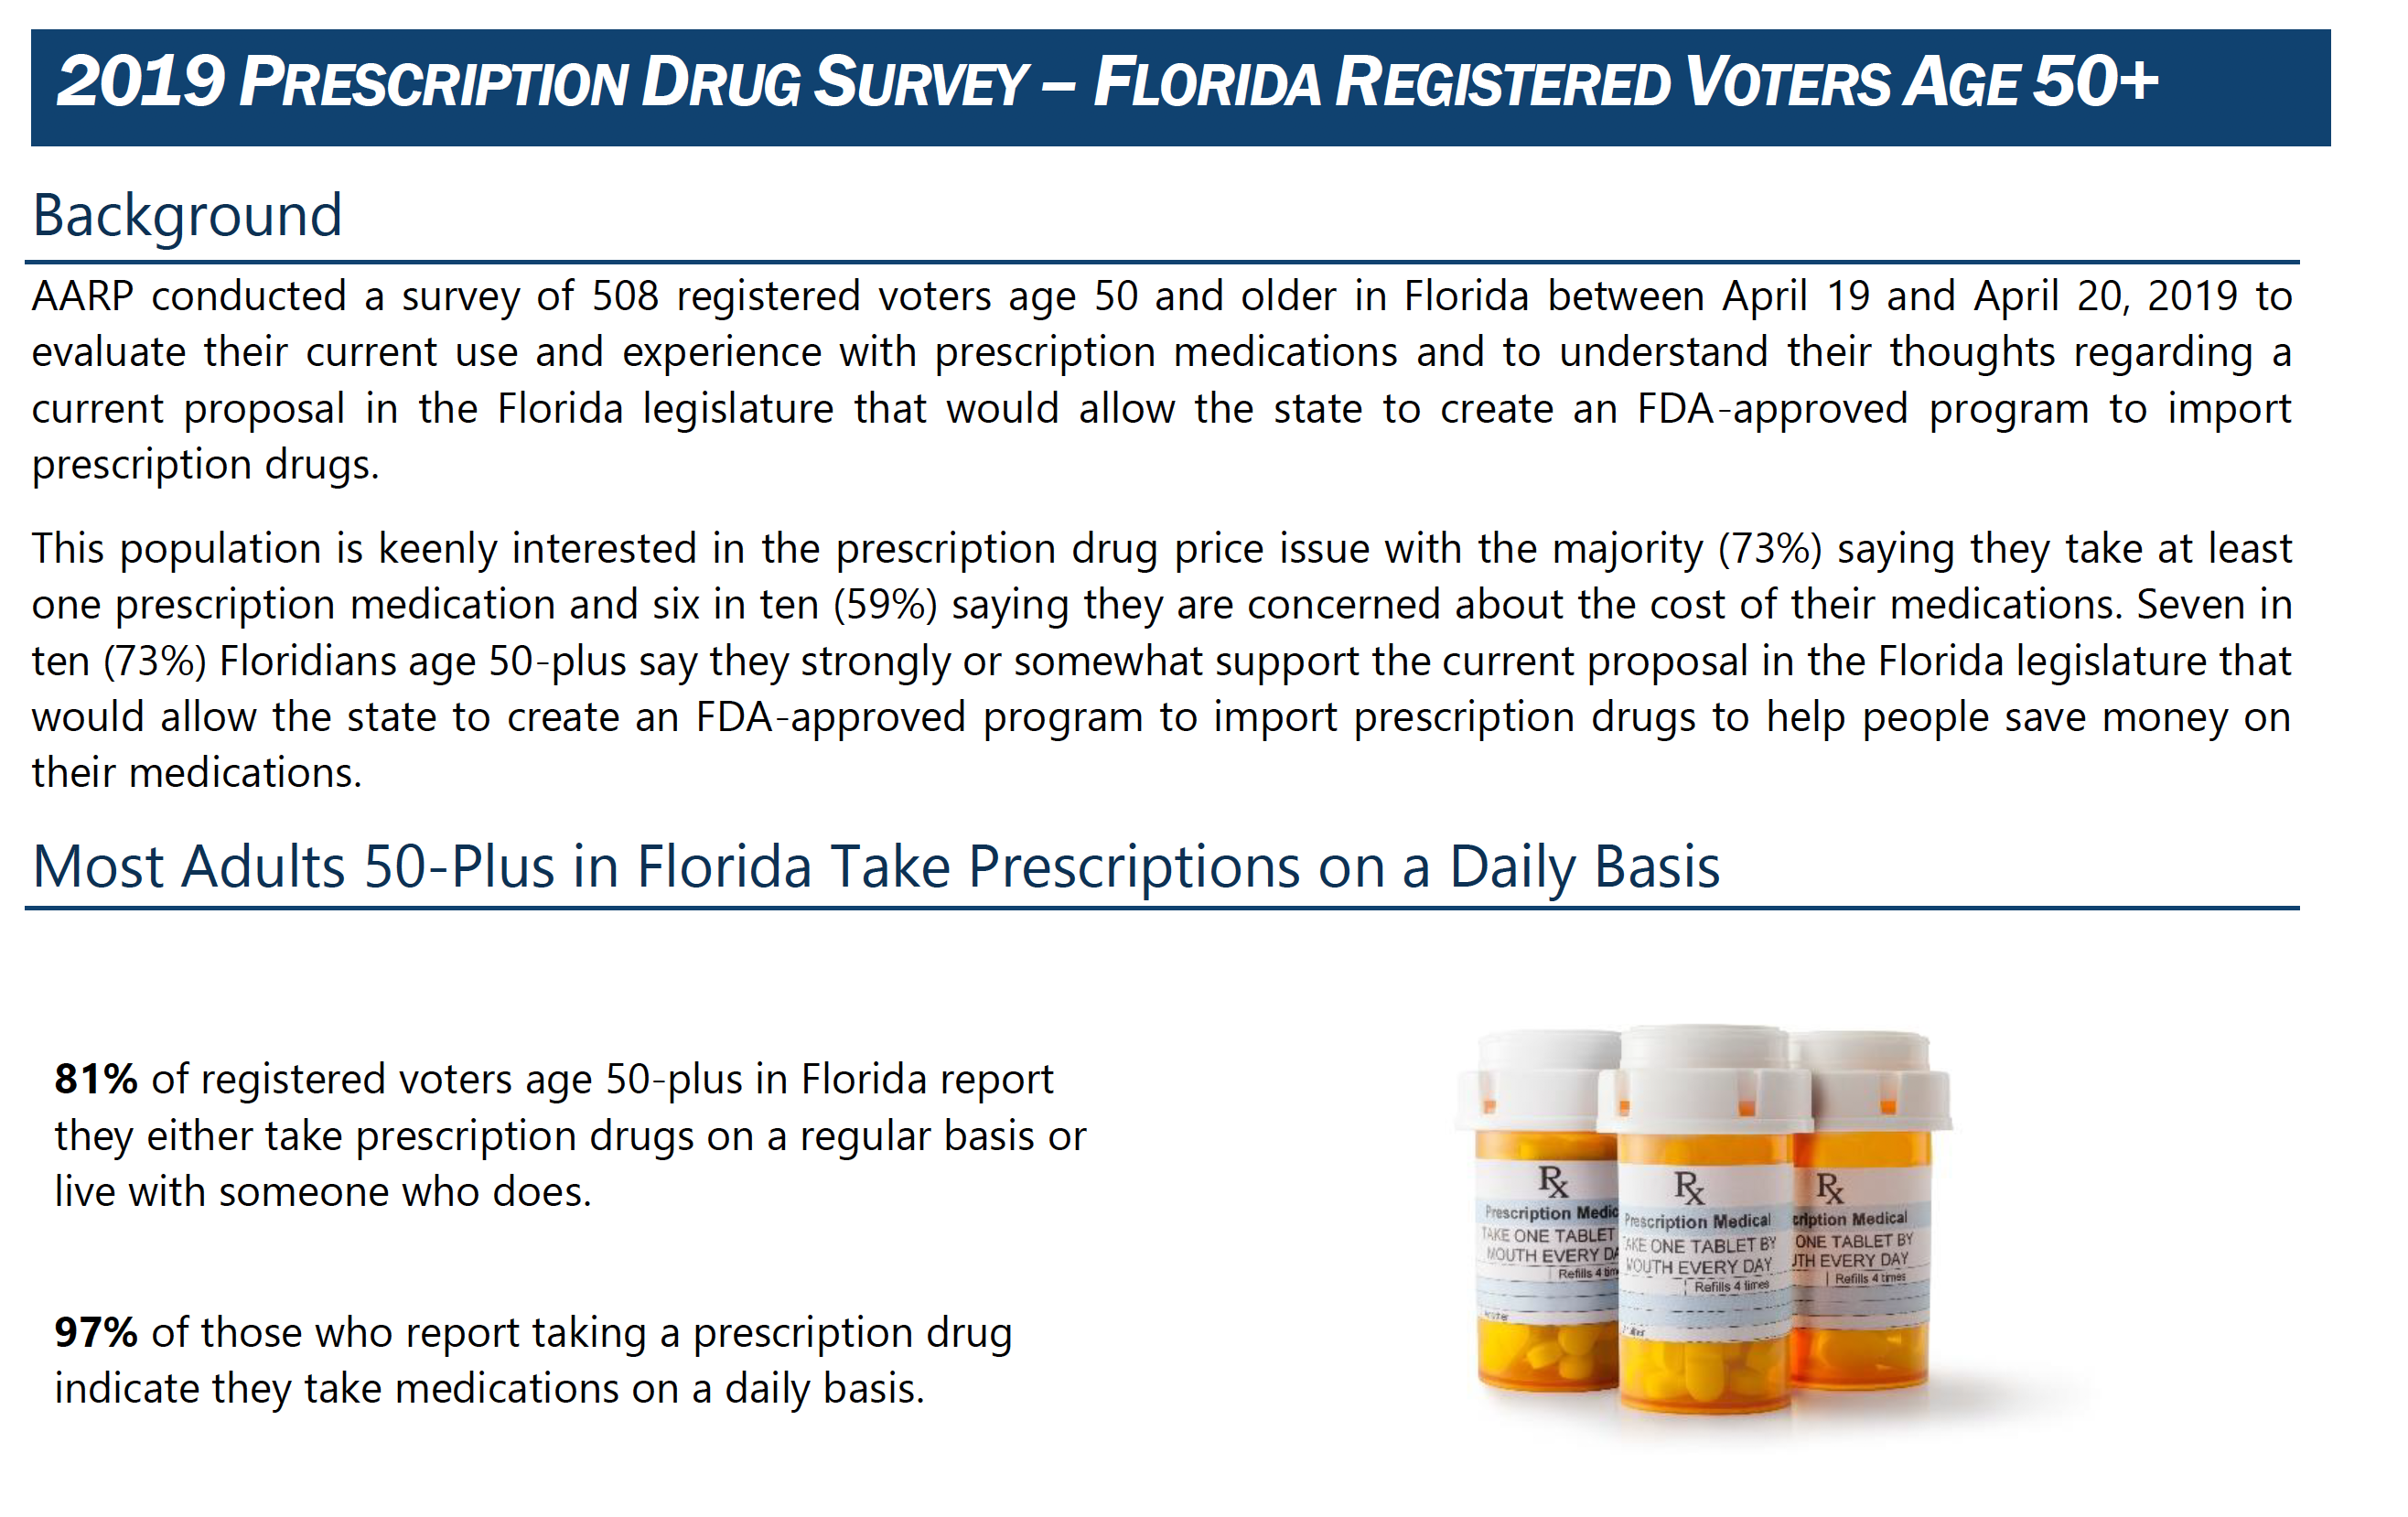 2019 AARP Florida prescription drug survey